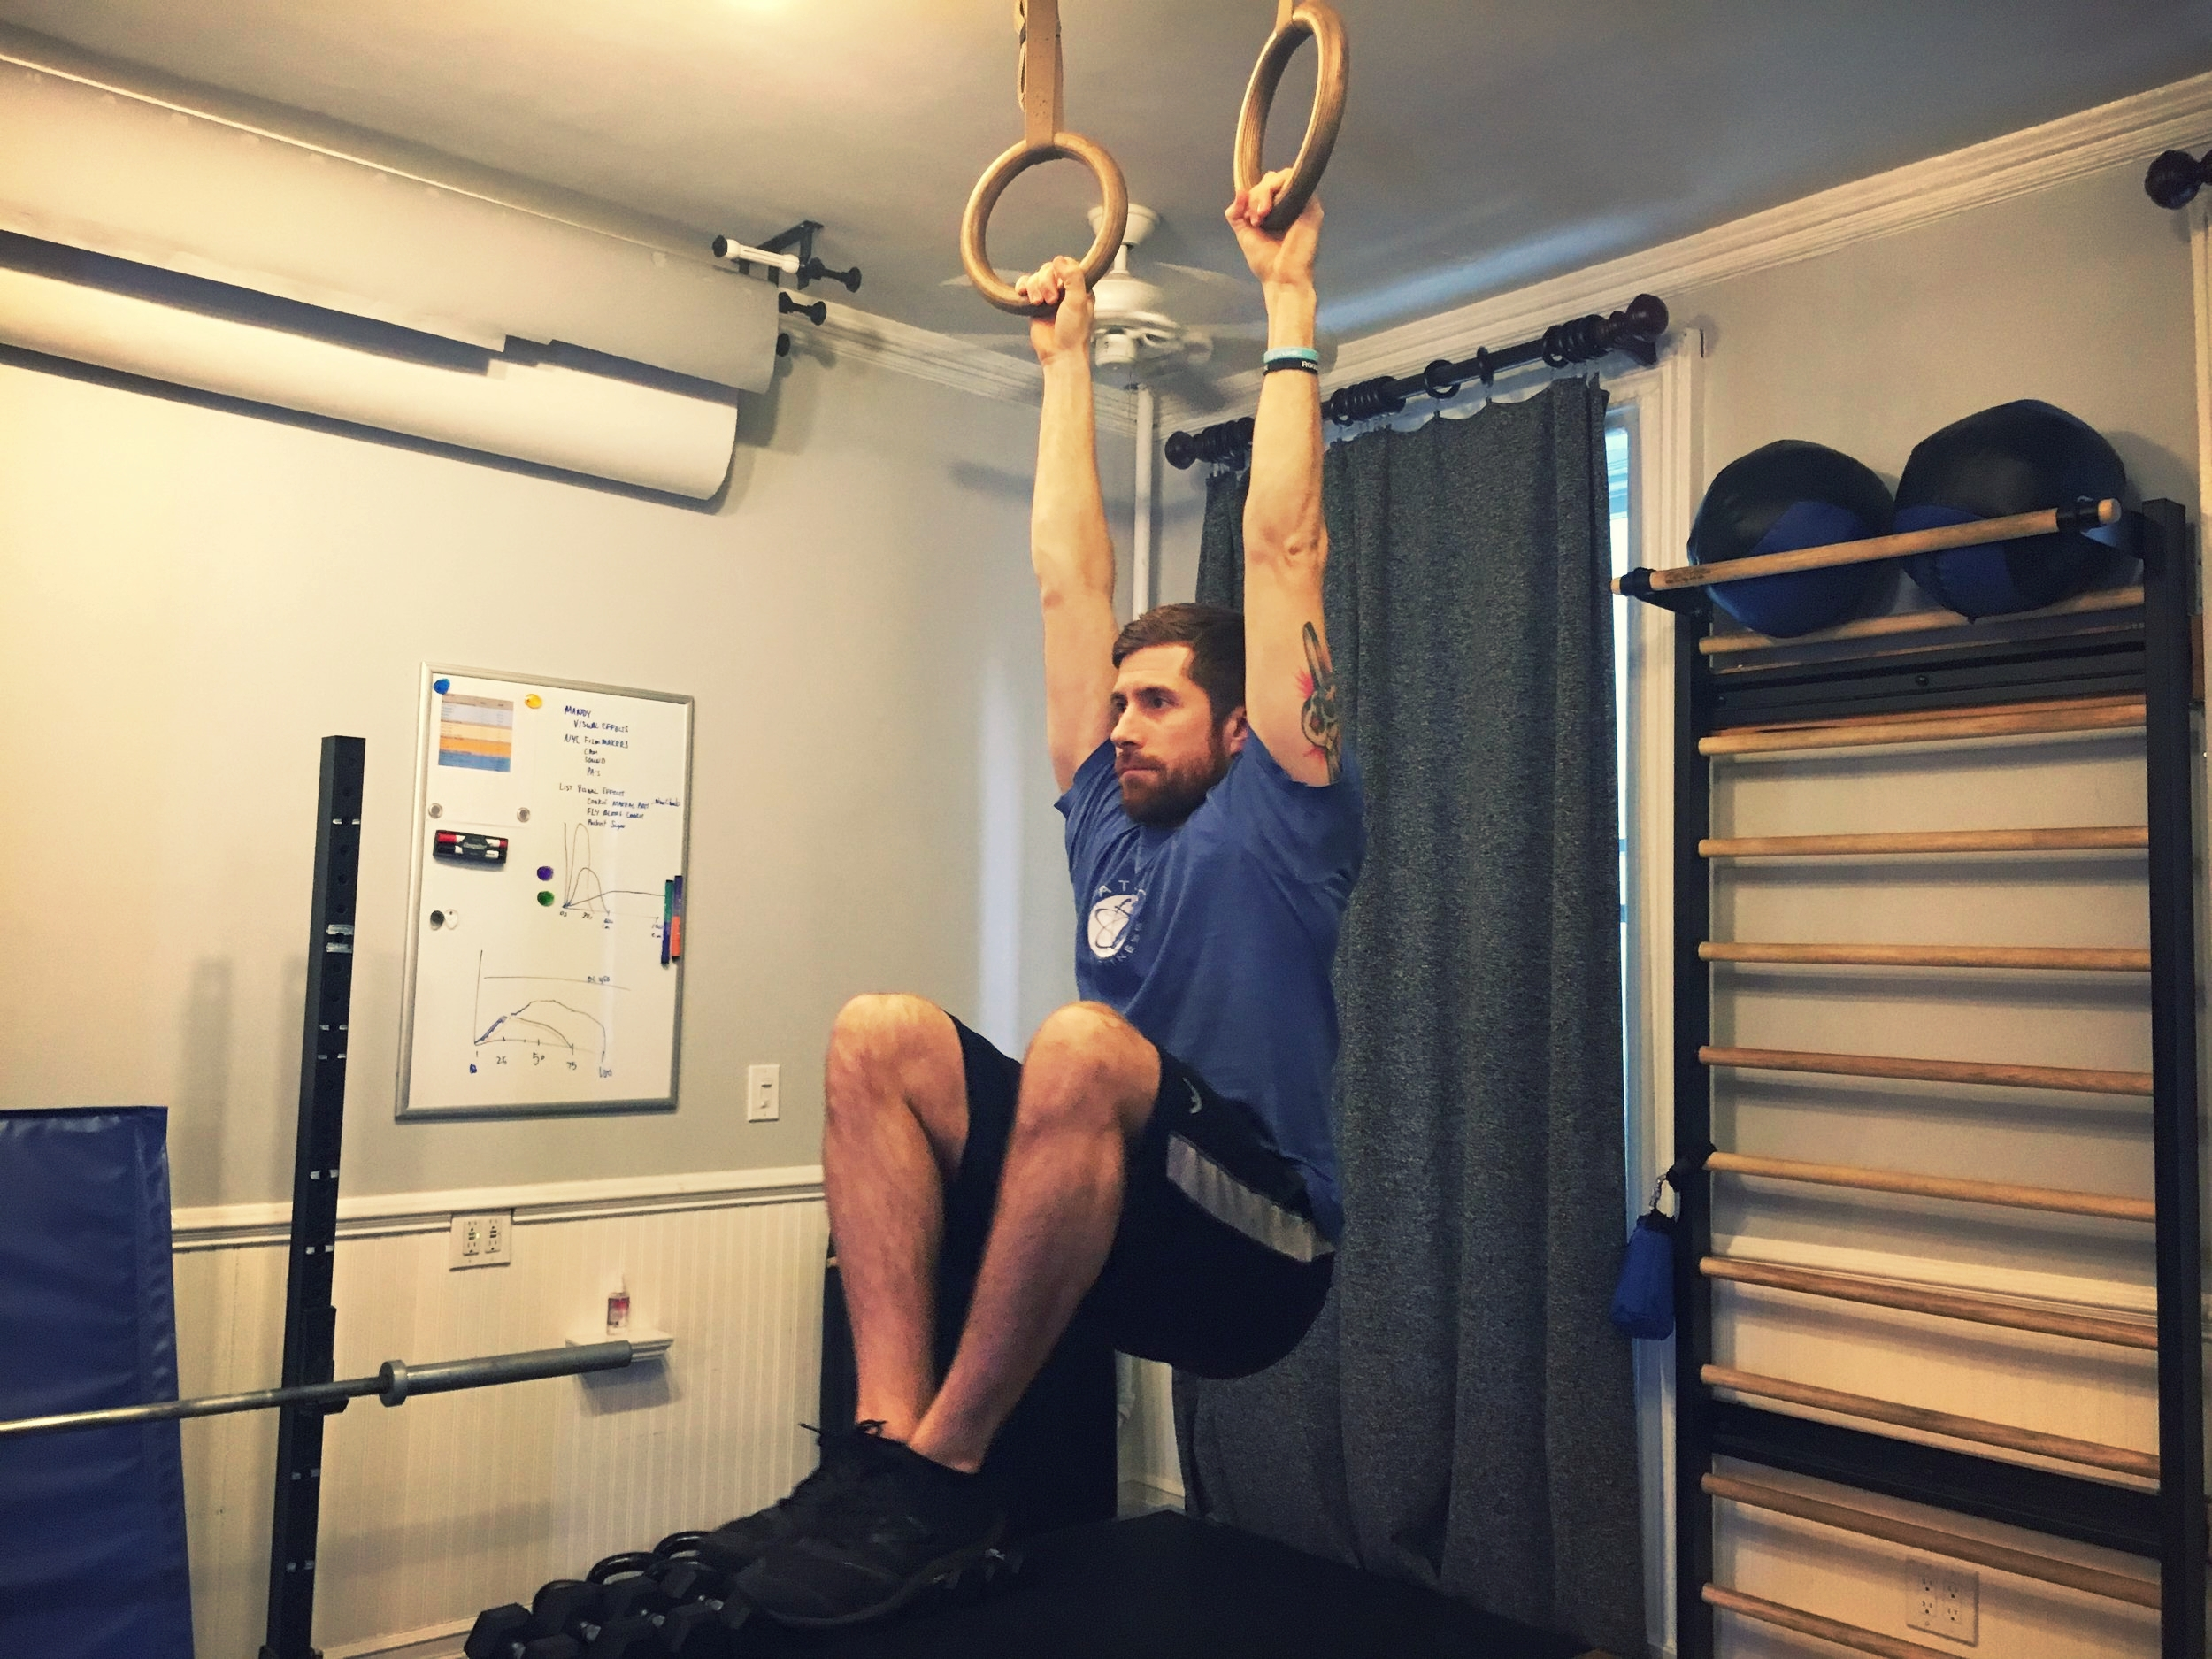 *Hanging Knee Raise: focus on movement into spinal flexion